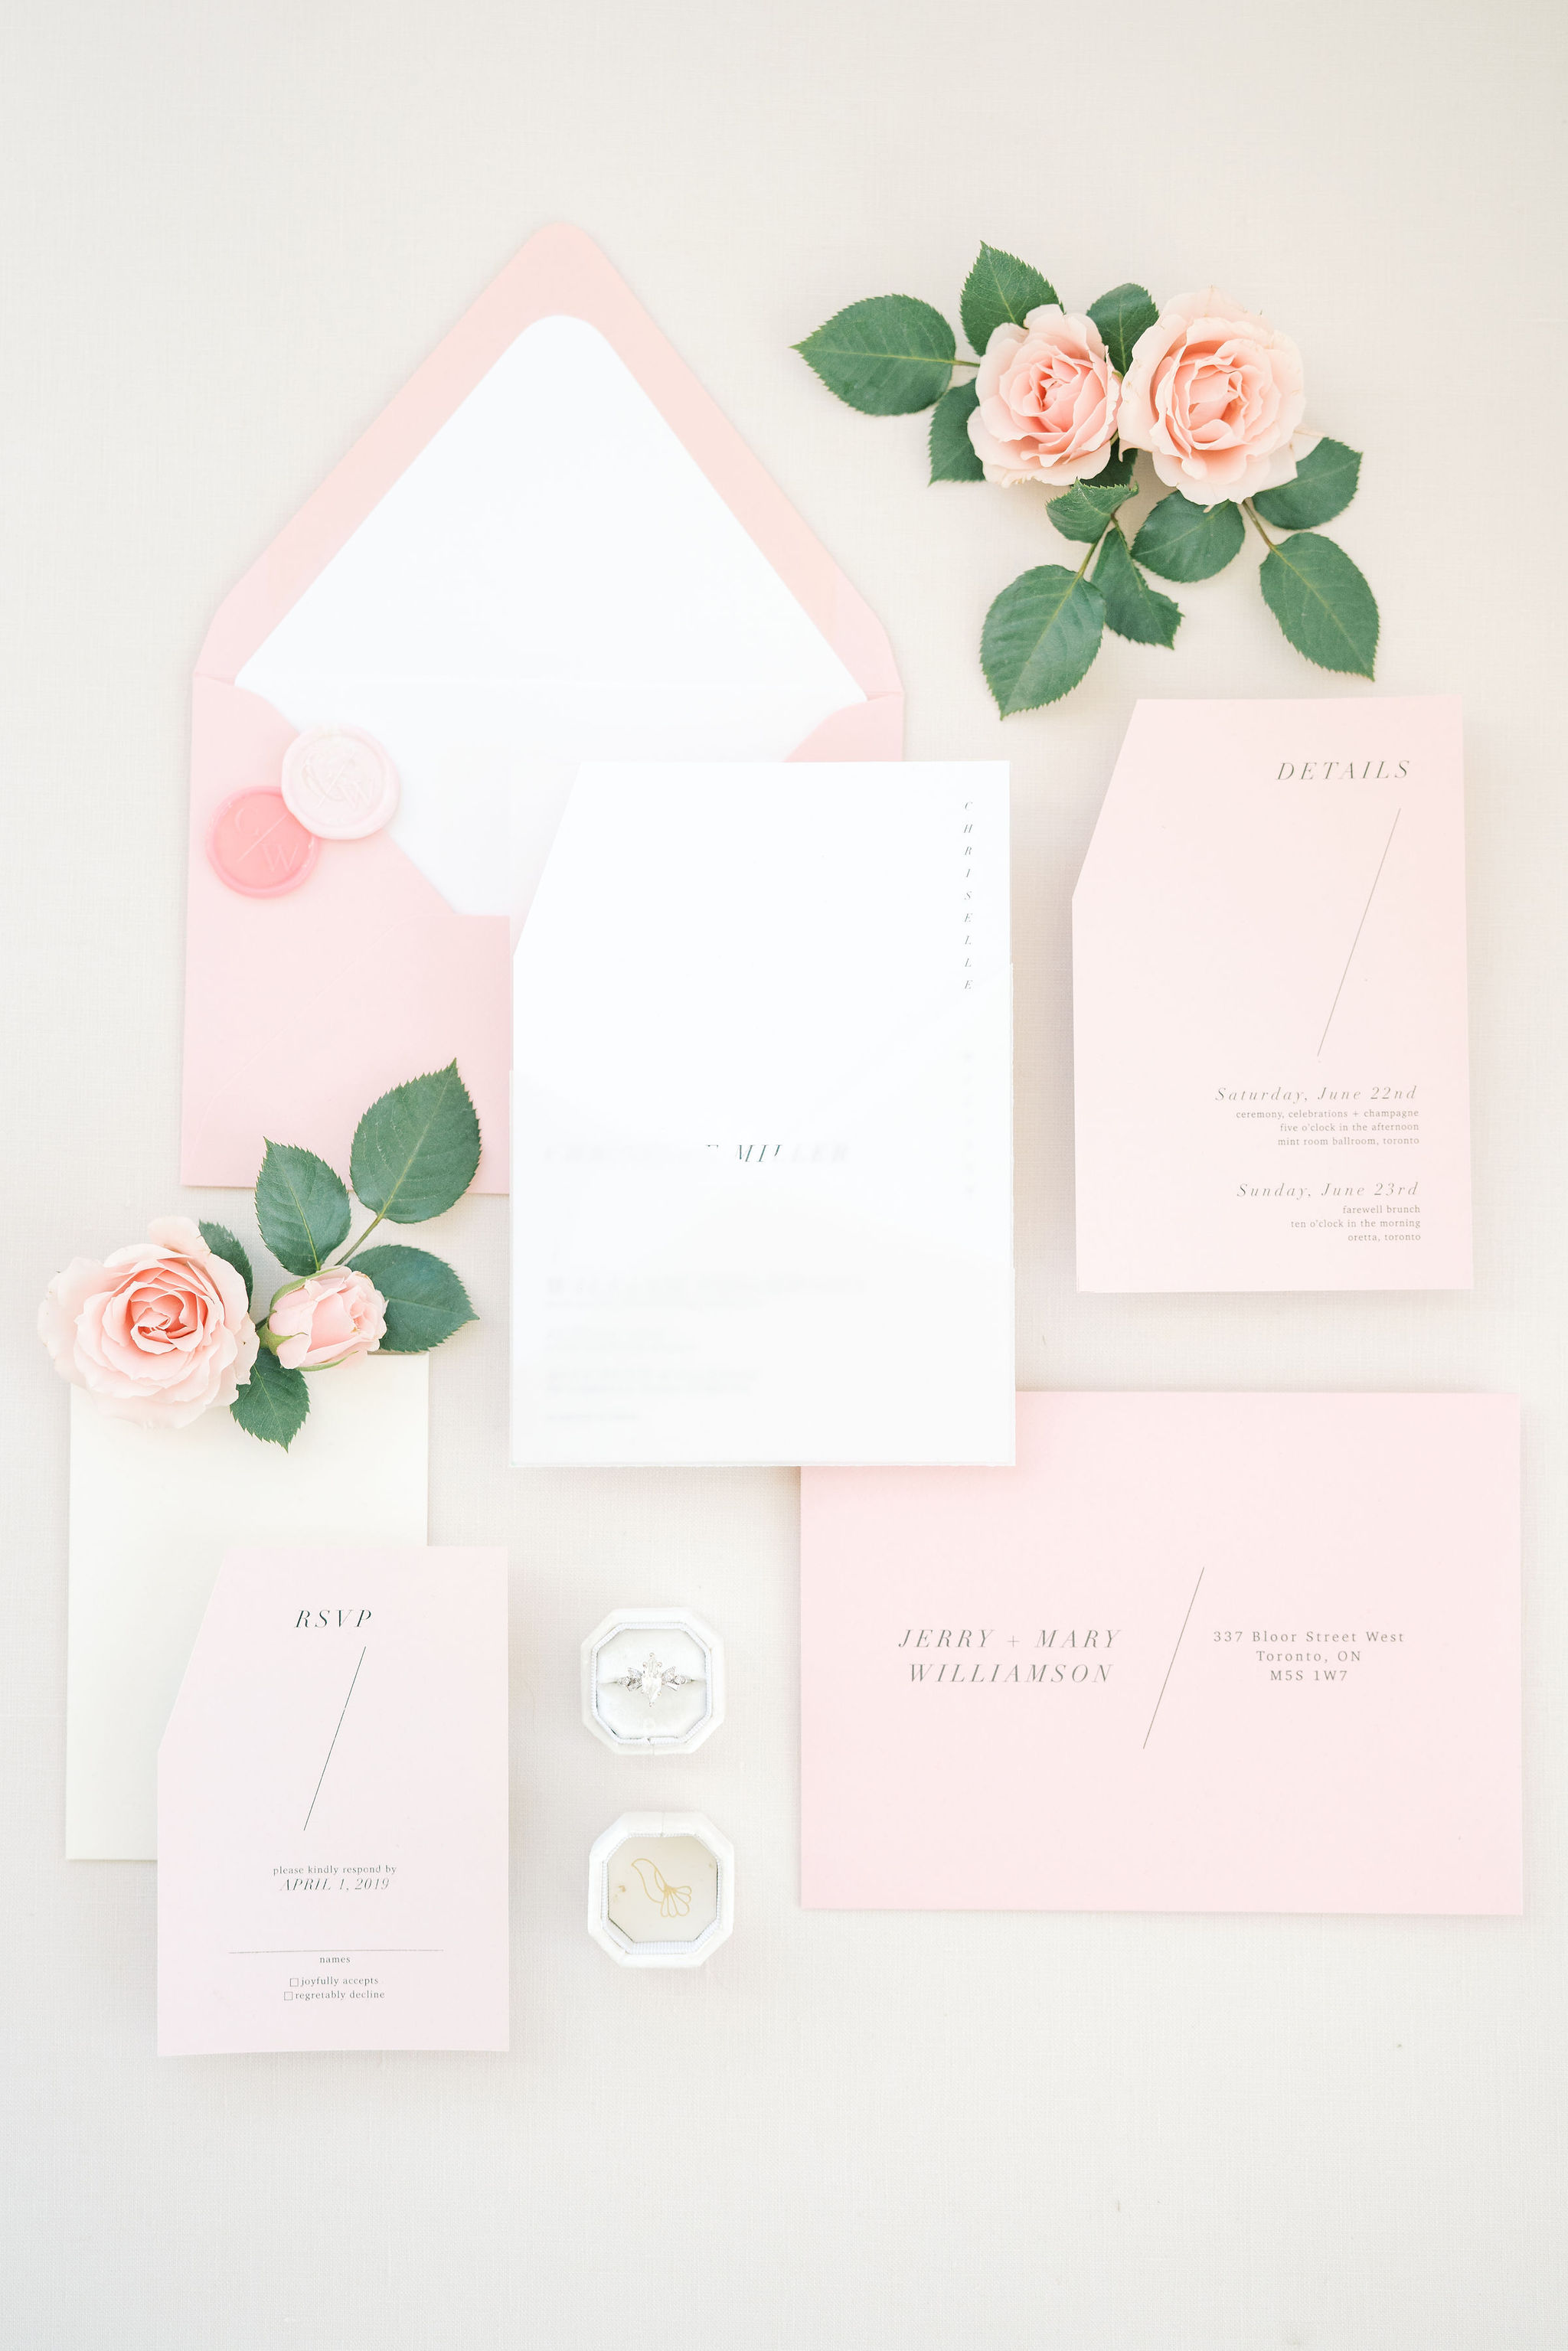 Detailed Wedding Invitations